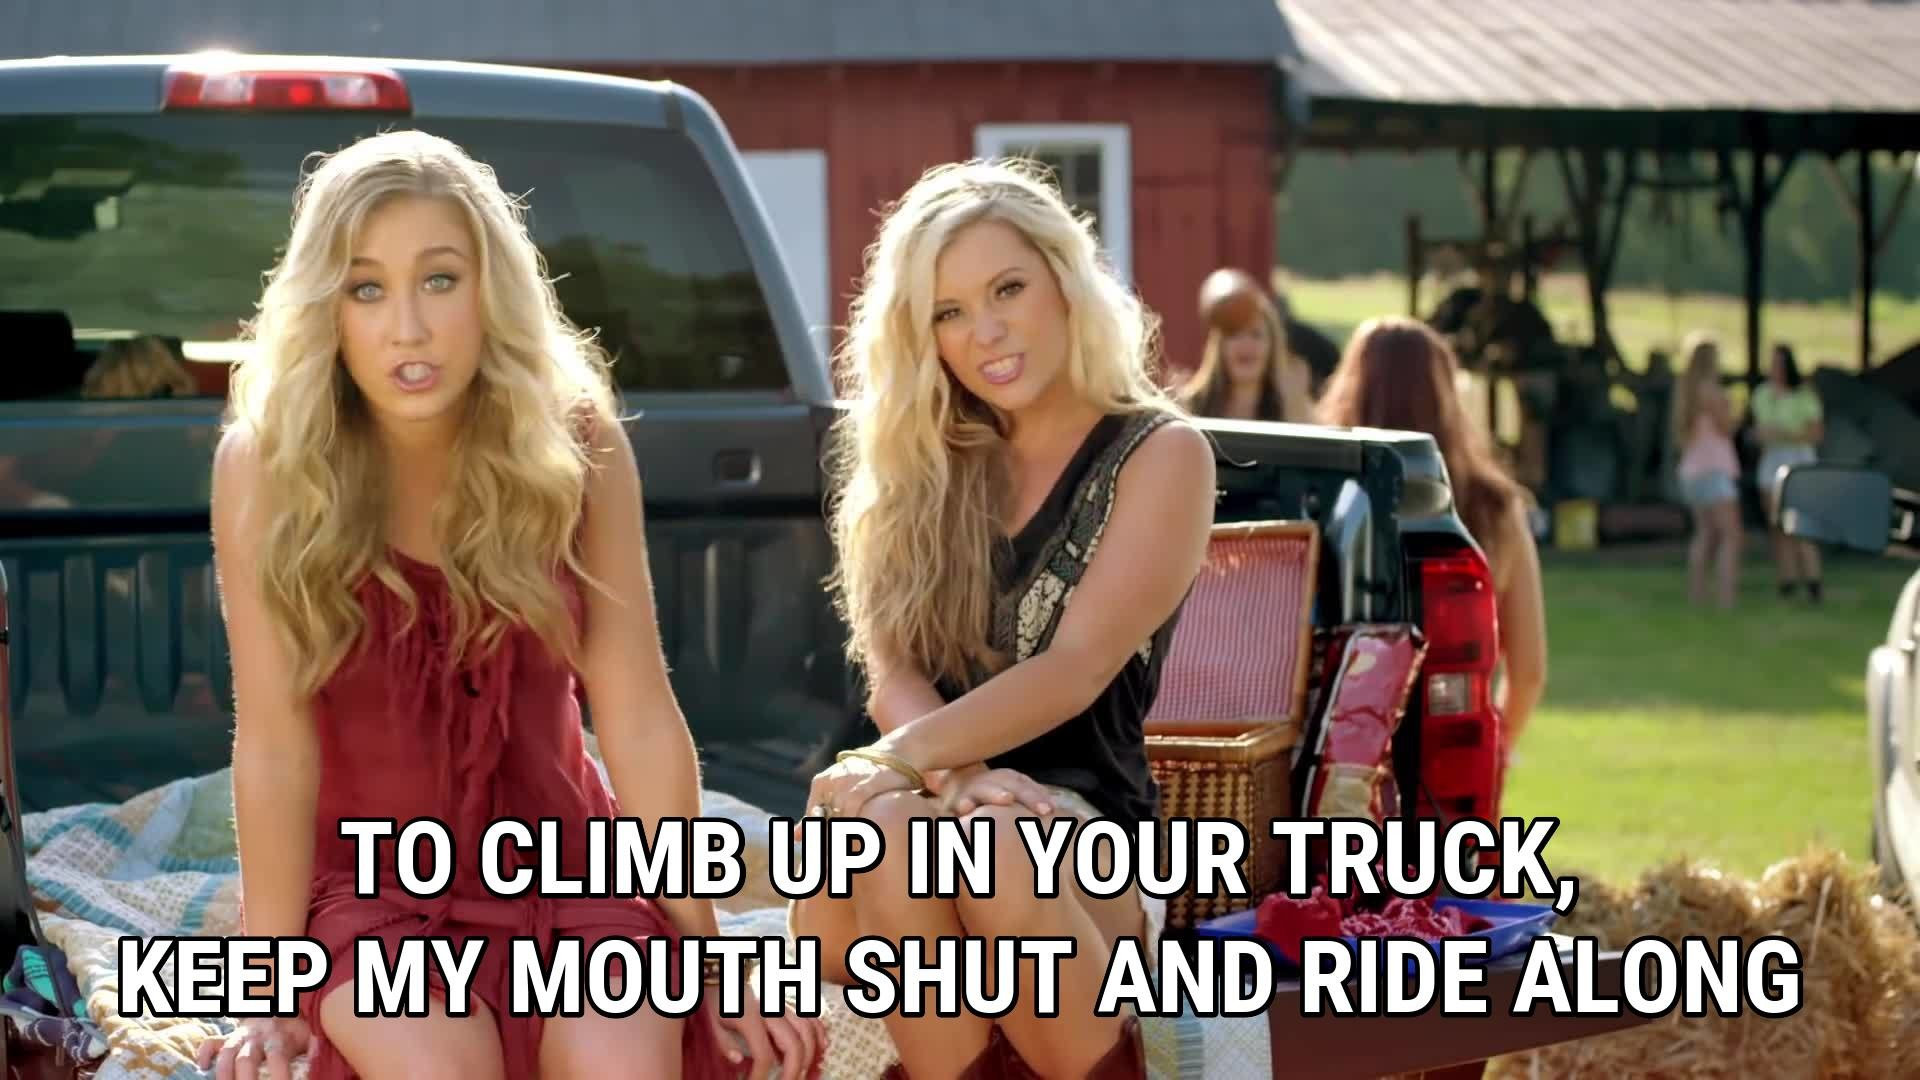 To climb up in your truck, keep my mouth shut and ride along